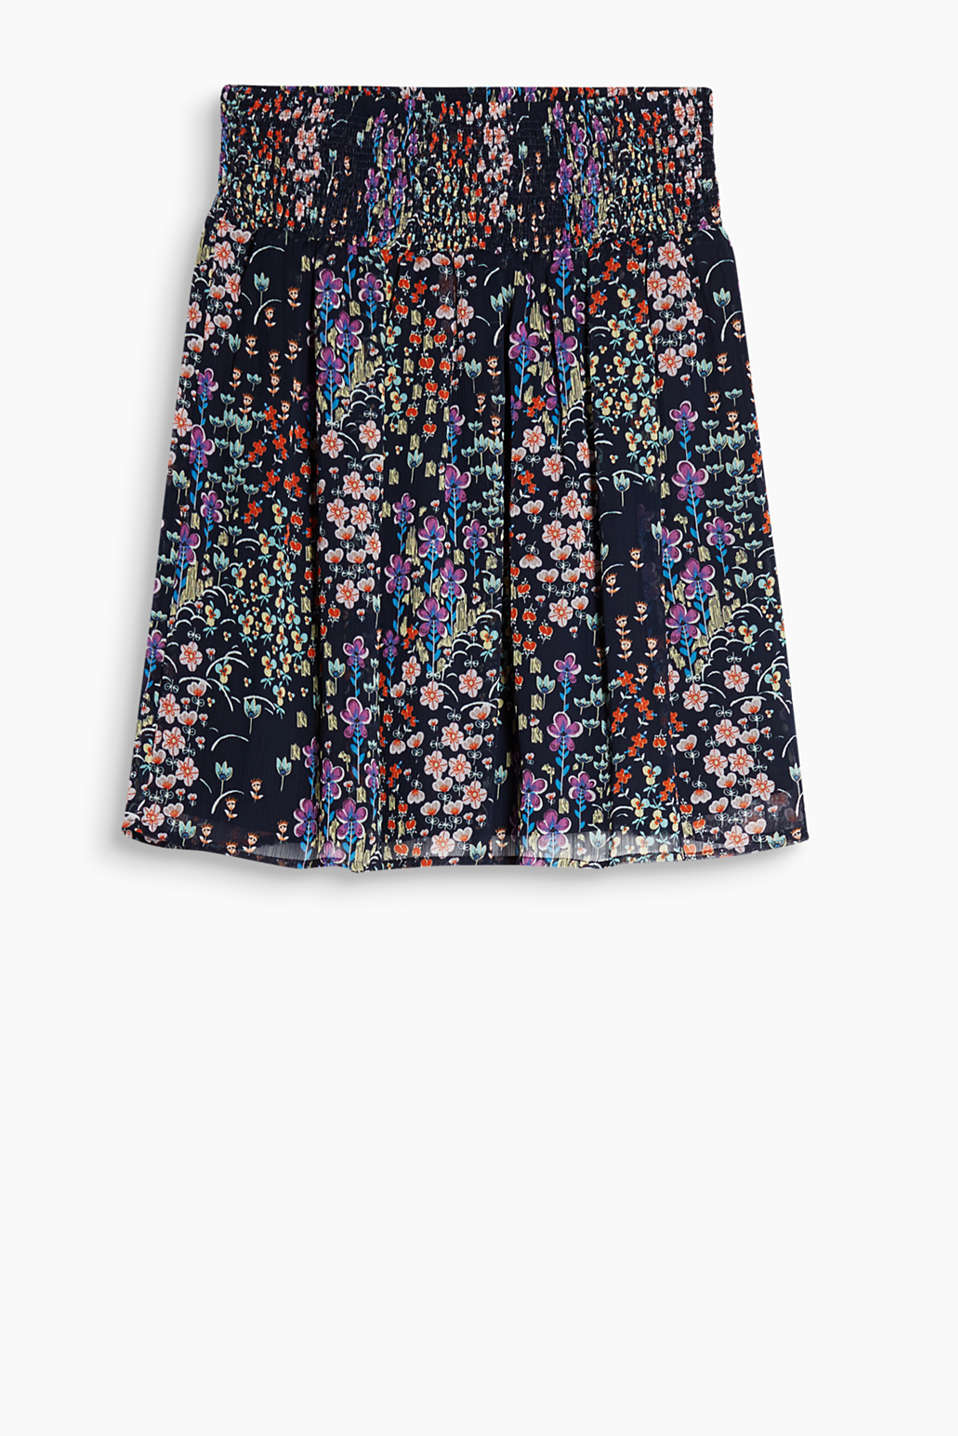 Swirling skirt in delicate crinkle chiffon with a colourful floral pattern and a wide smocked waistband